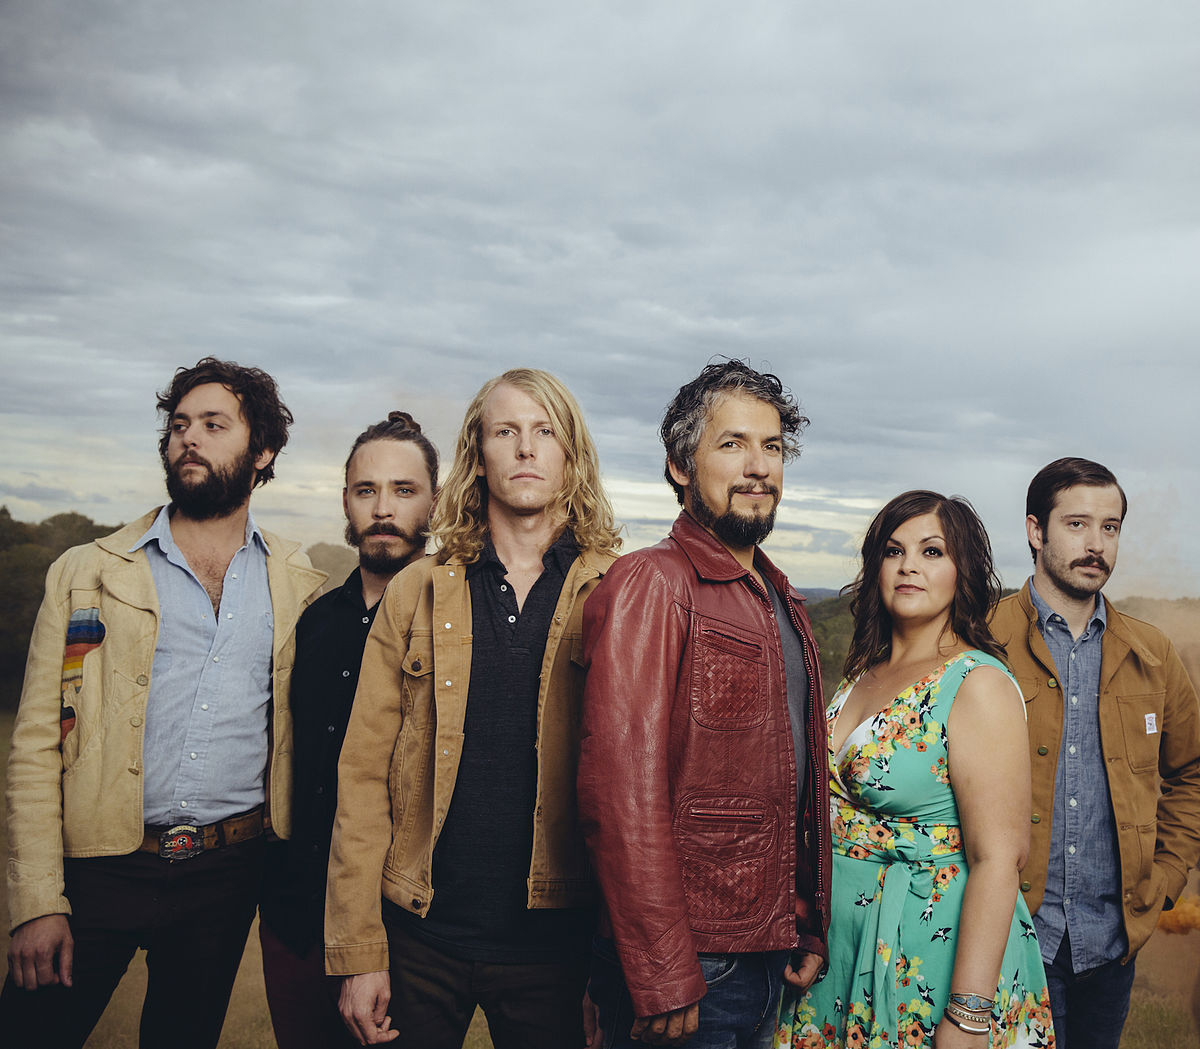 CONCERT PREVIEW: The Black Lillies